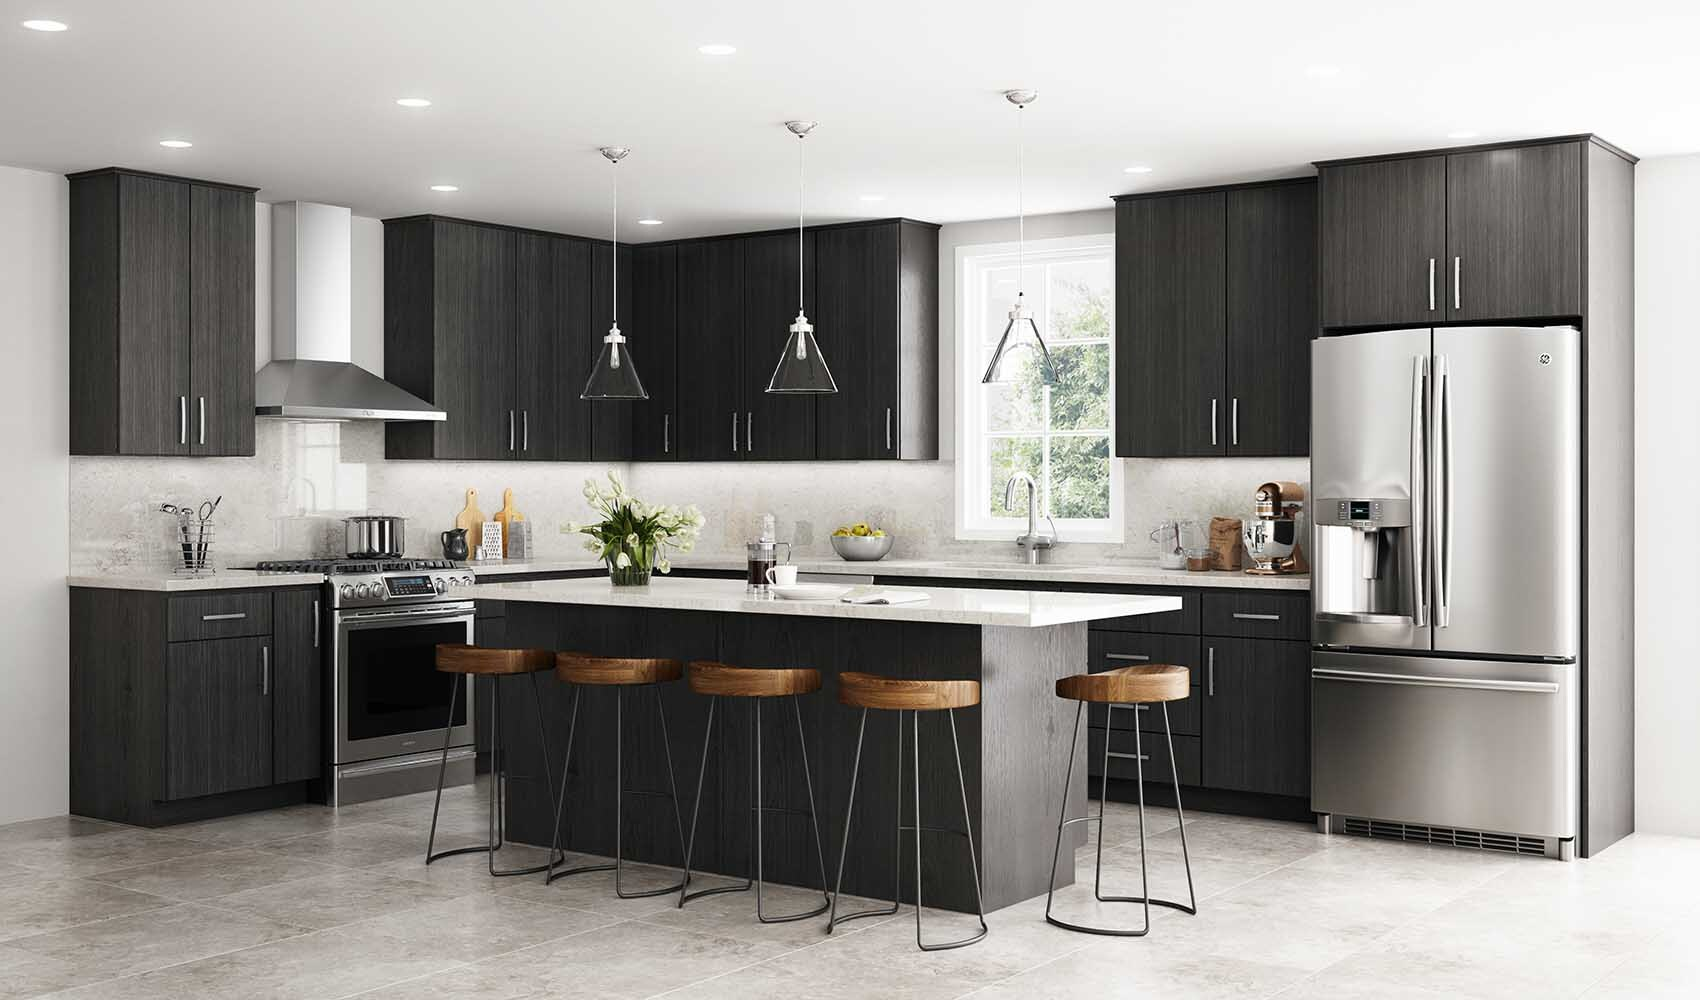 Should Kitchen Cabinets Go To The Ceiling